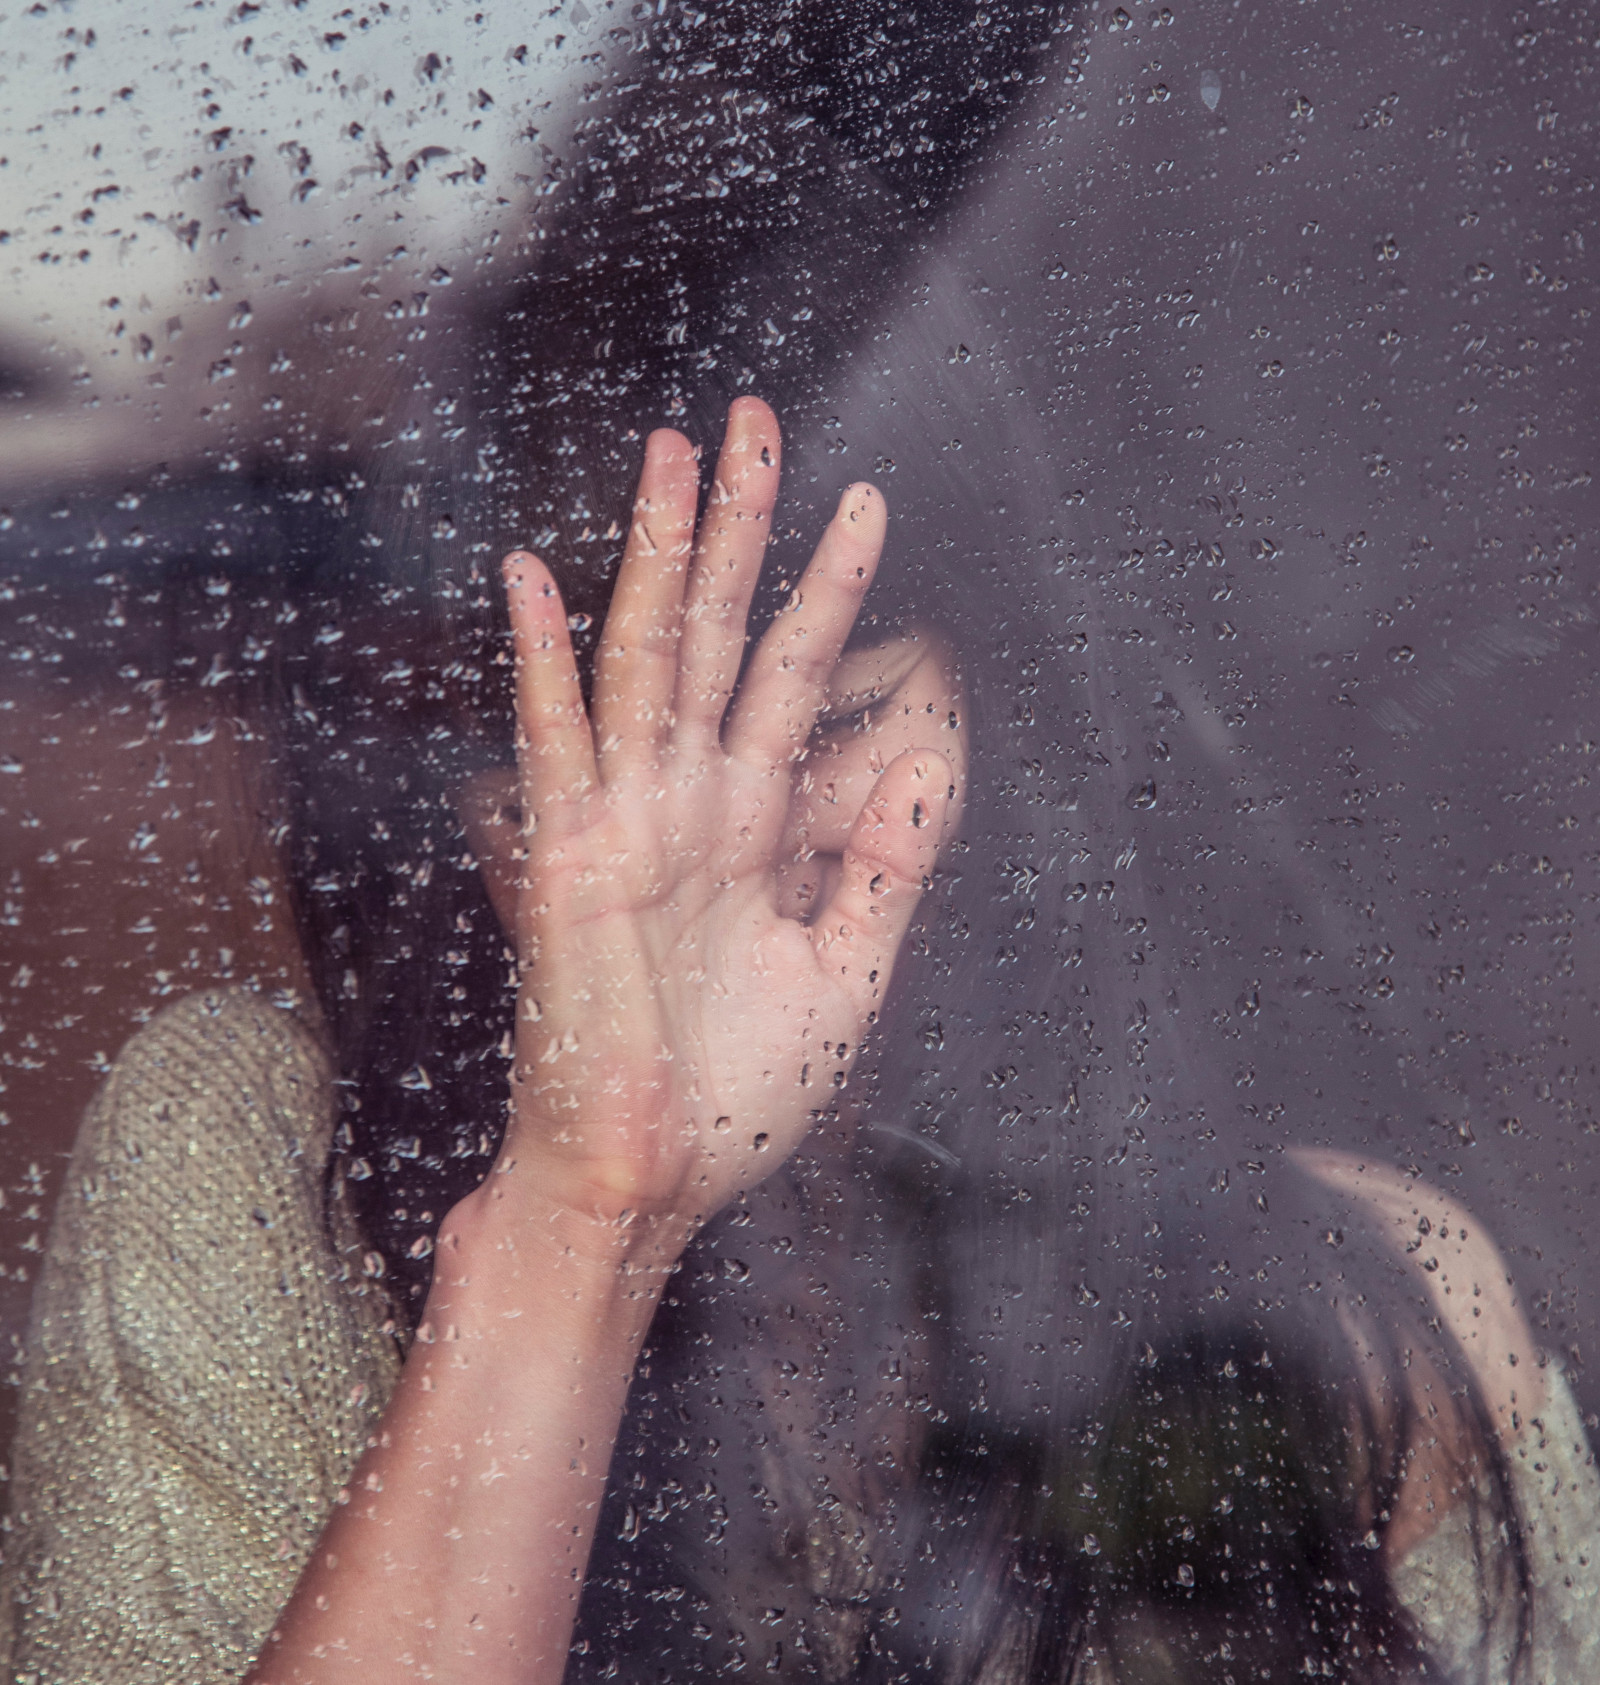 woman in shadow with her hand against a pane of glass with rain on it